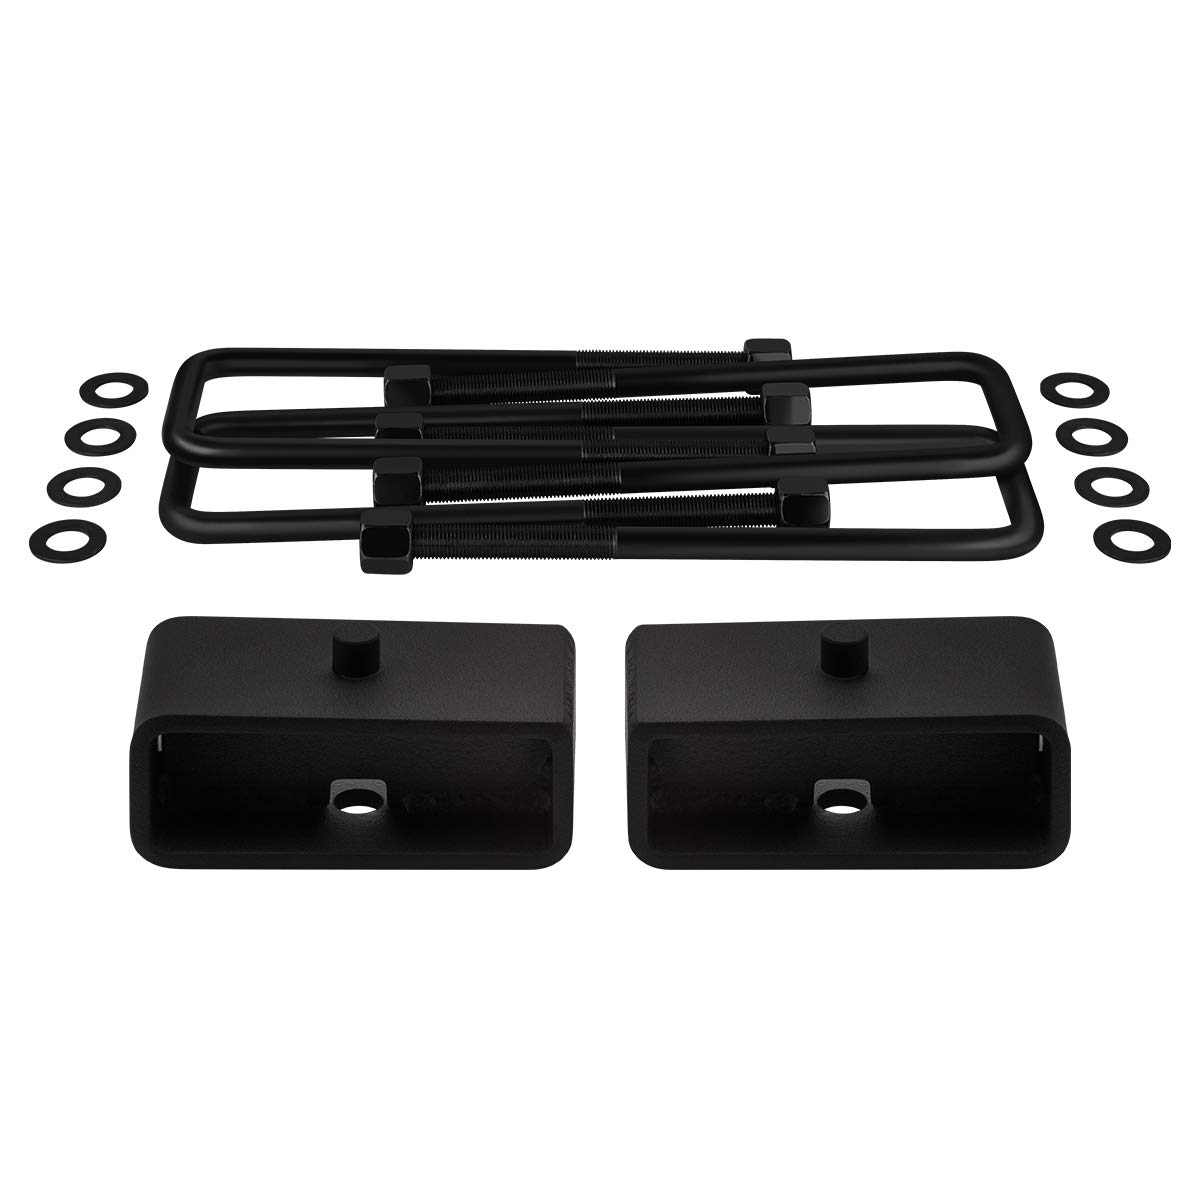 Axle Alignment Shims 2 Rear Lift Blocks Square Bend U-Bolts Full Lift Kit for 2007-2019 Silverado Sierra 1500 3.5 Front Lift Strut Spacers Supreme Suspensions